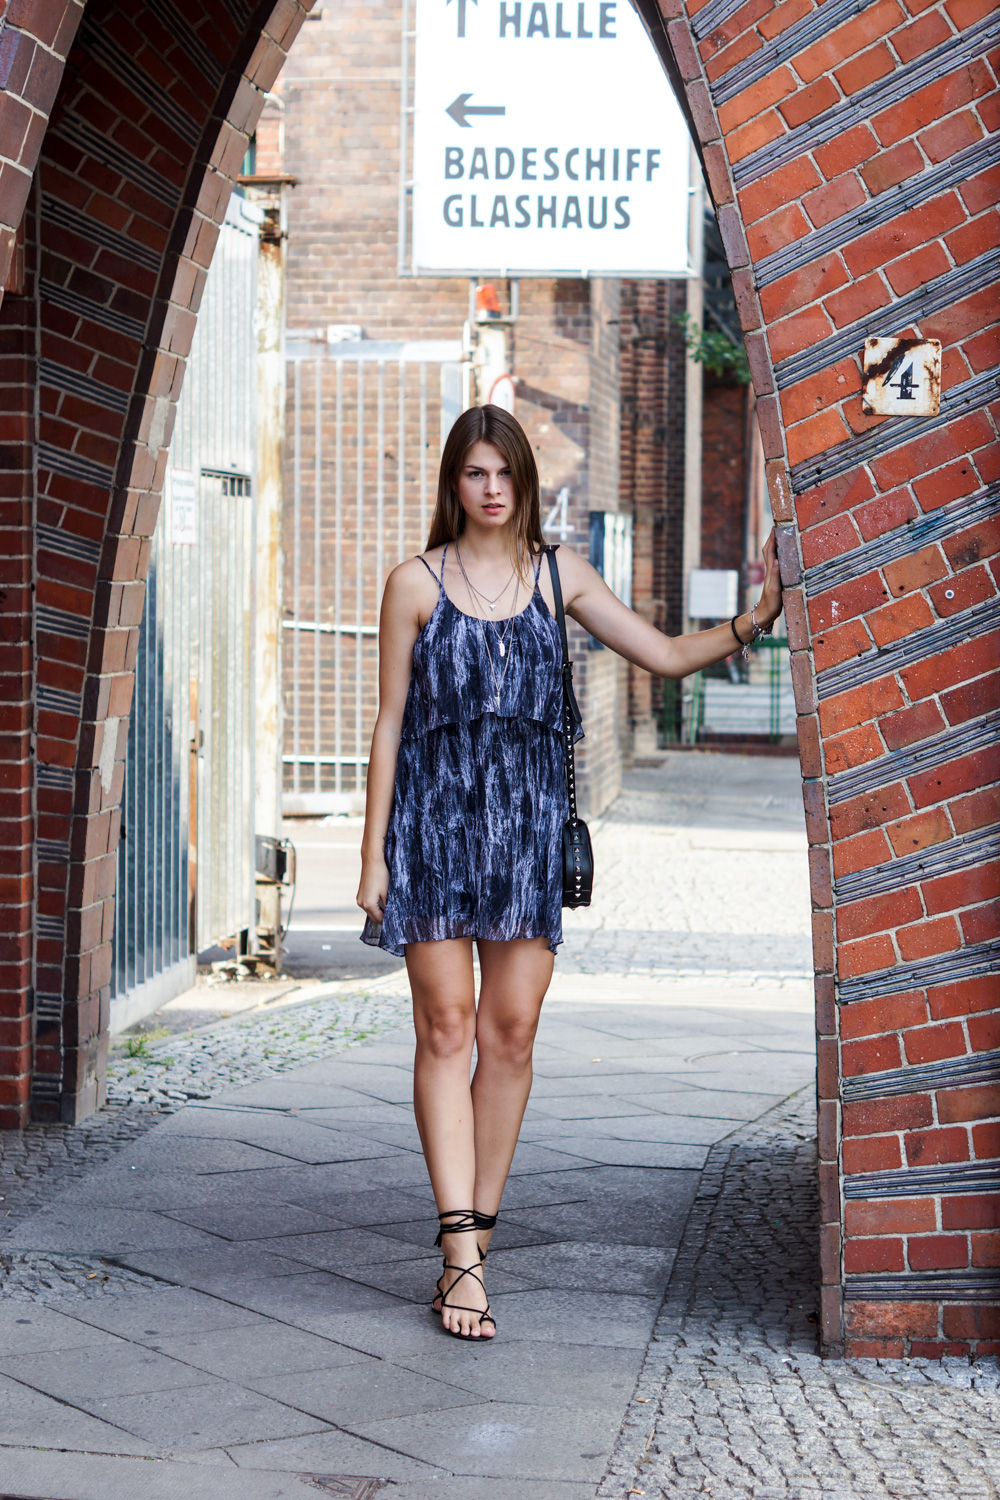 Pepe Jeans Summer Holidays Outfit